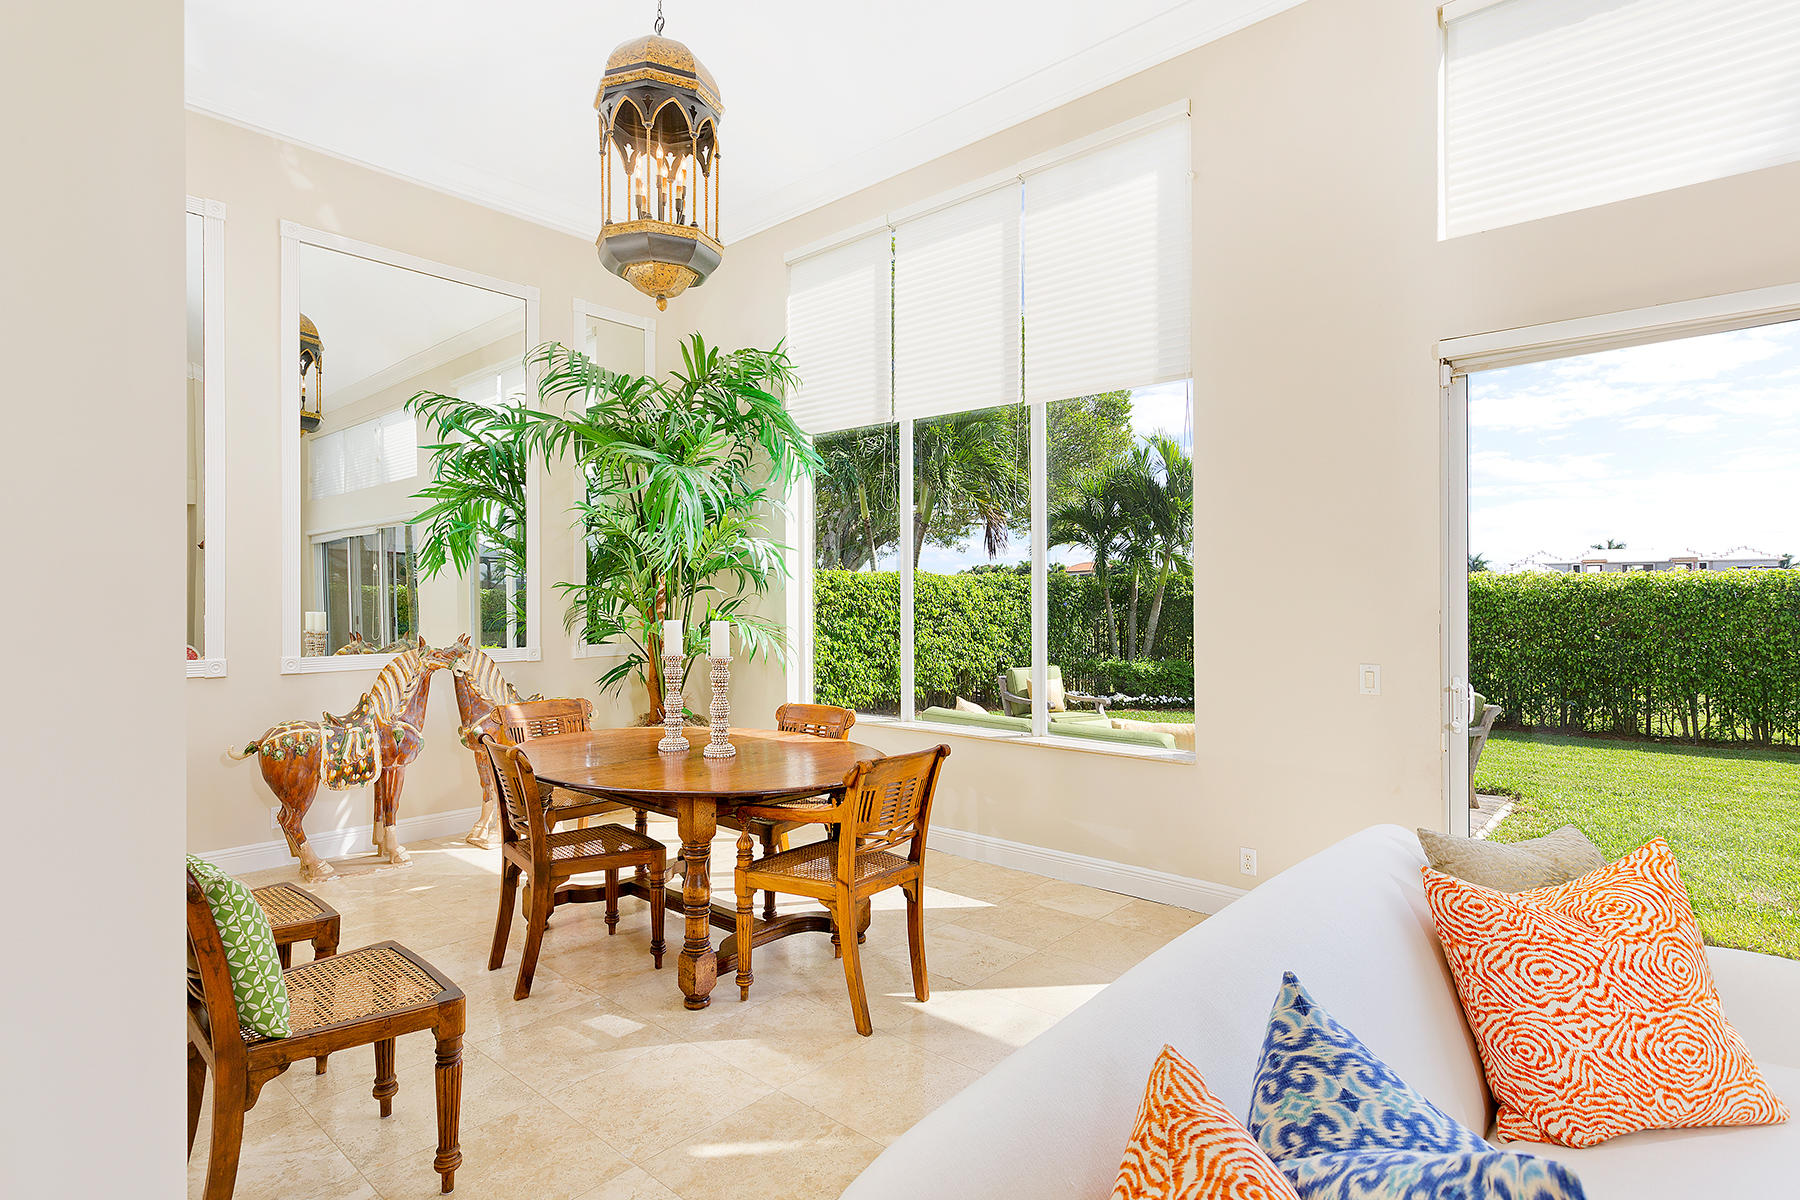 12500 Sunnydale Drive, Wellington, Florida 33414, 5 Bedrooms Bedrooms, ,4.1 BathroomsBathrooms,Single Family,For Sale,Palm Beach Polo,Sunnydale,RX-10461886